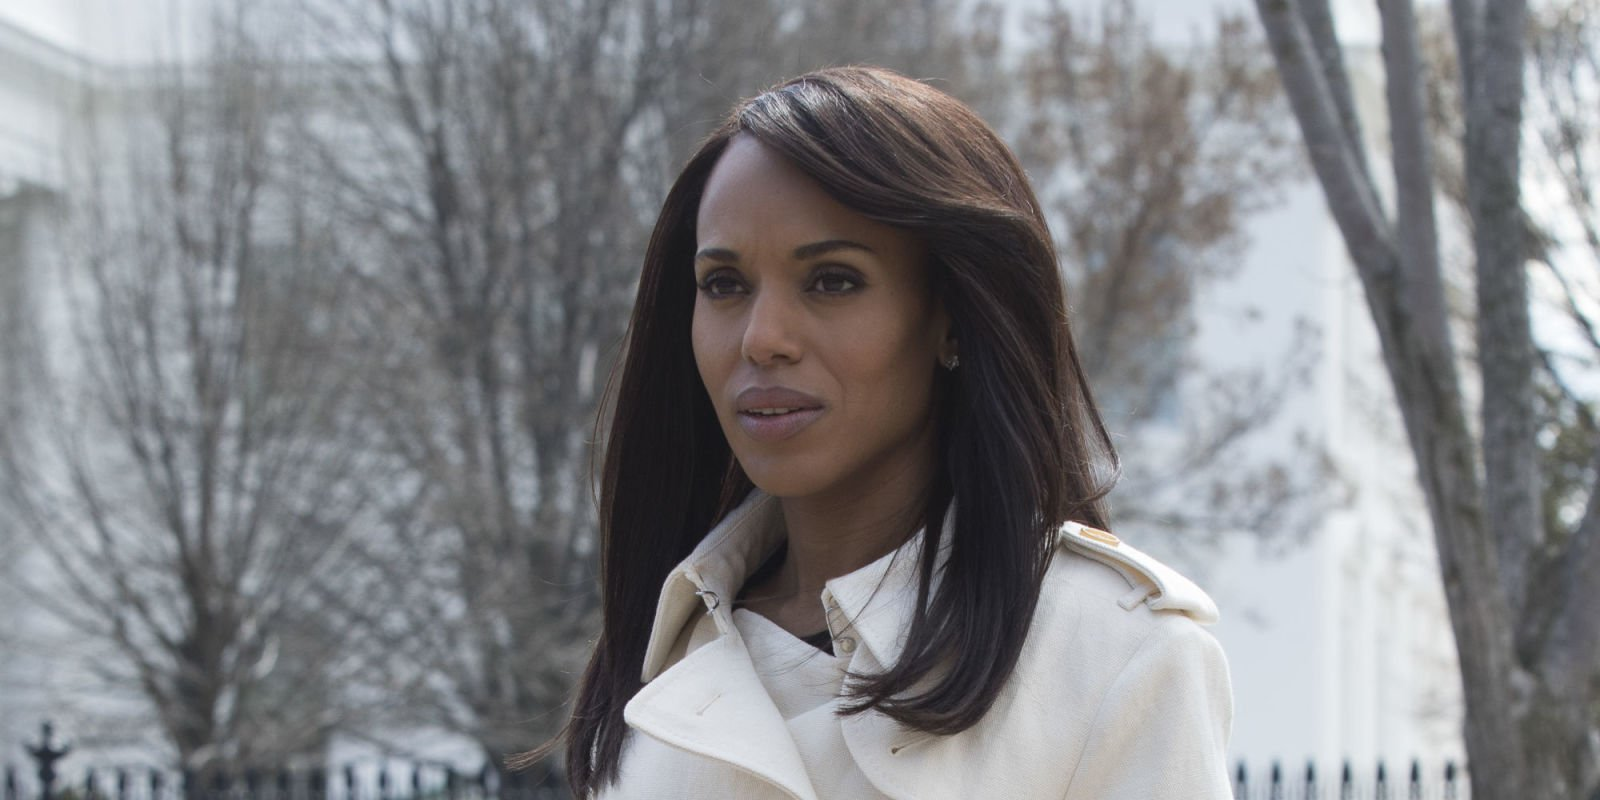 Kerry Washington reveals what playing Olivia Pope on Scandal has taught her